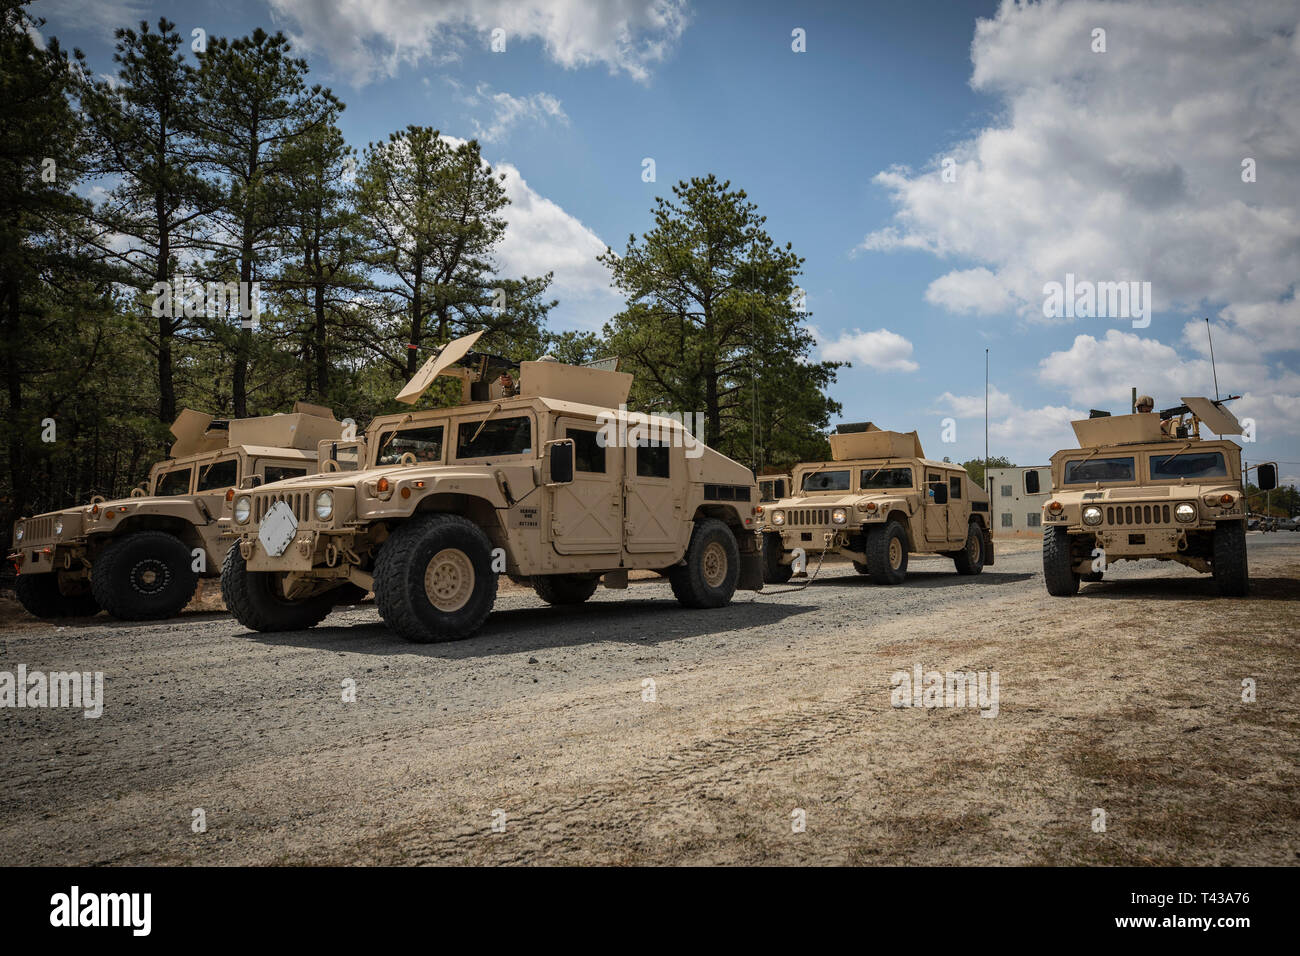 U.S. Army National Guard Soldiers with the 253rd Transportation Company hold a security position during tactical convoy training on Joint Base McGuire-Dix-Lakehurst, N.J., April 8, 2019. (U.S. Air National Guard photo by Master Sgt. Matt Hecht) Stock Photo